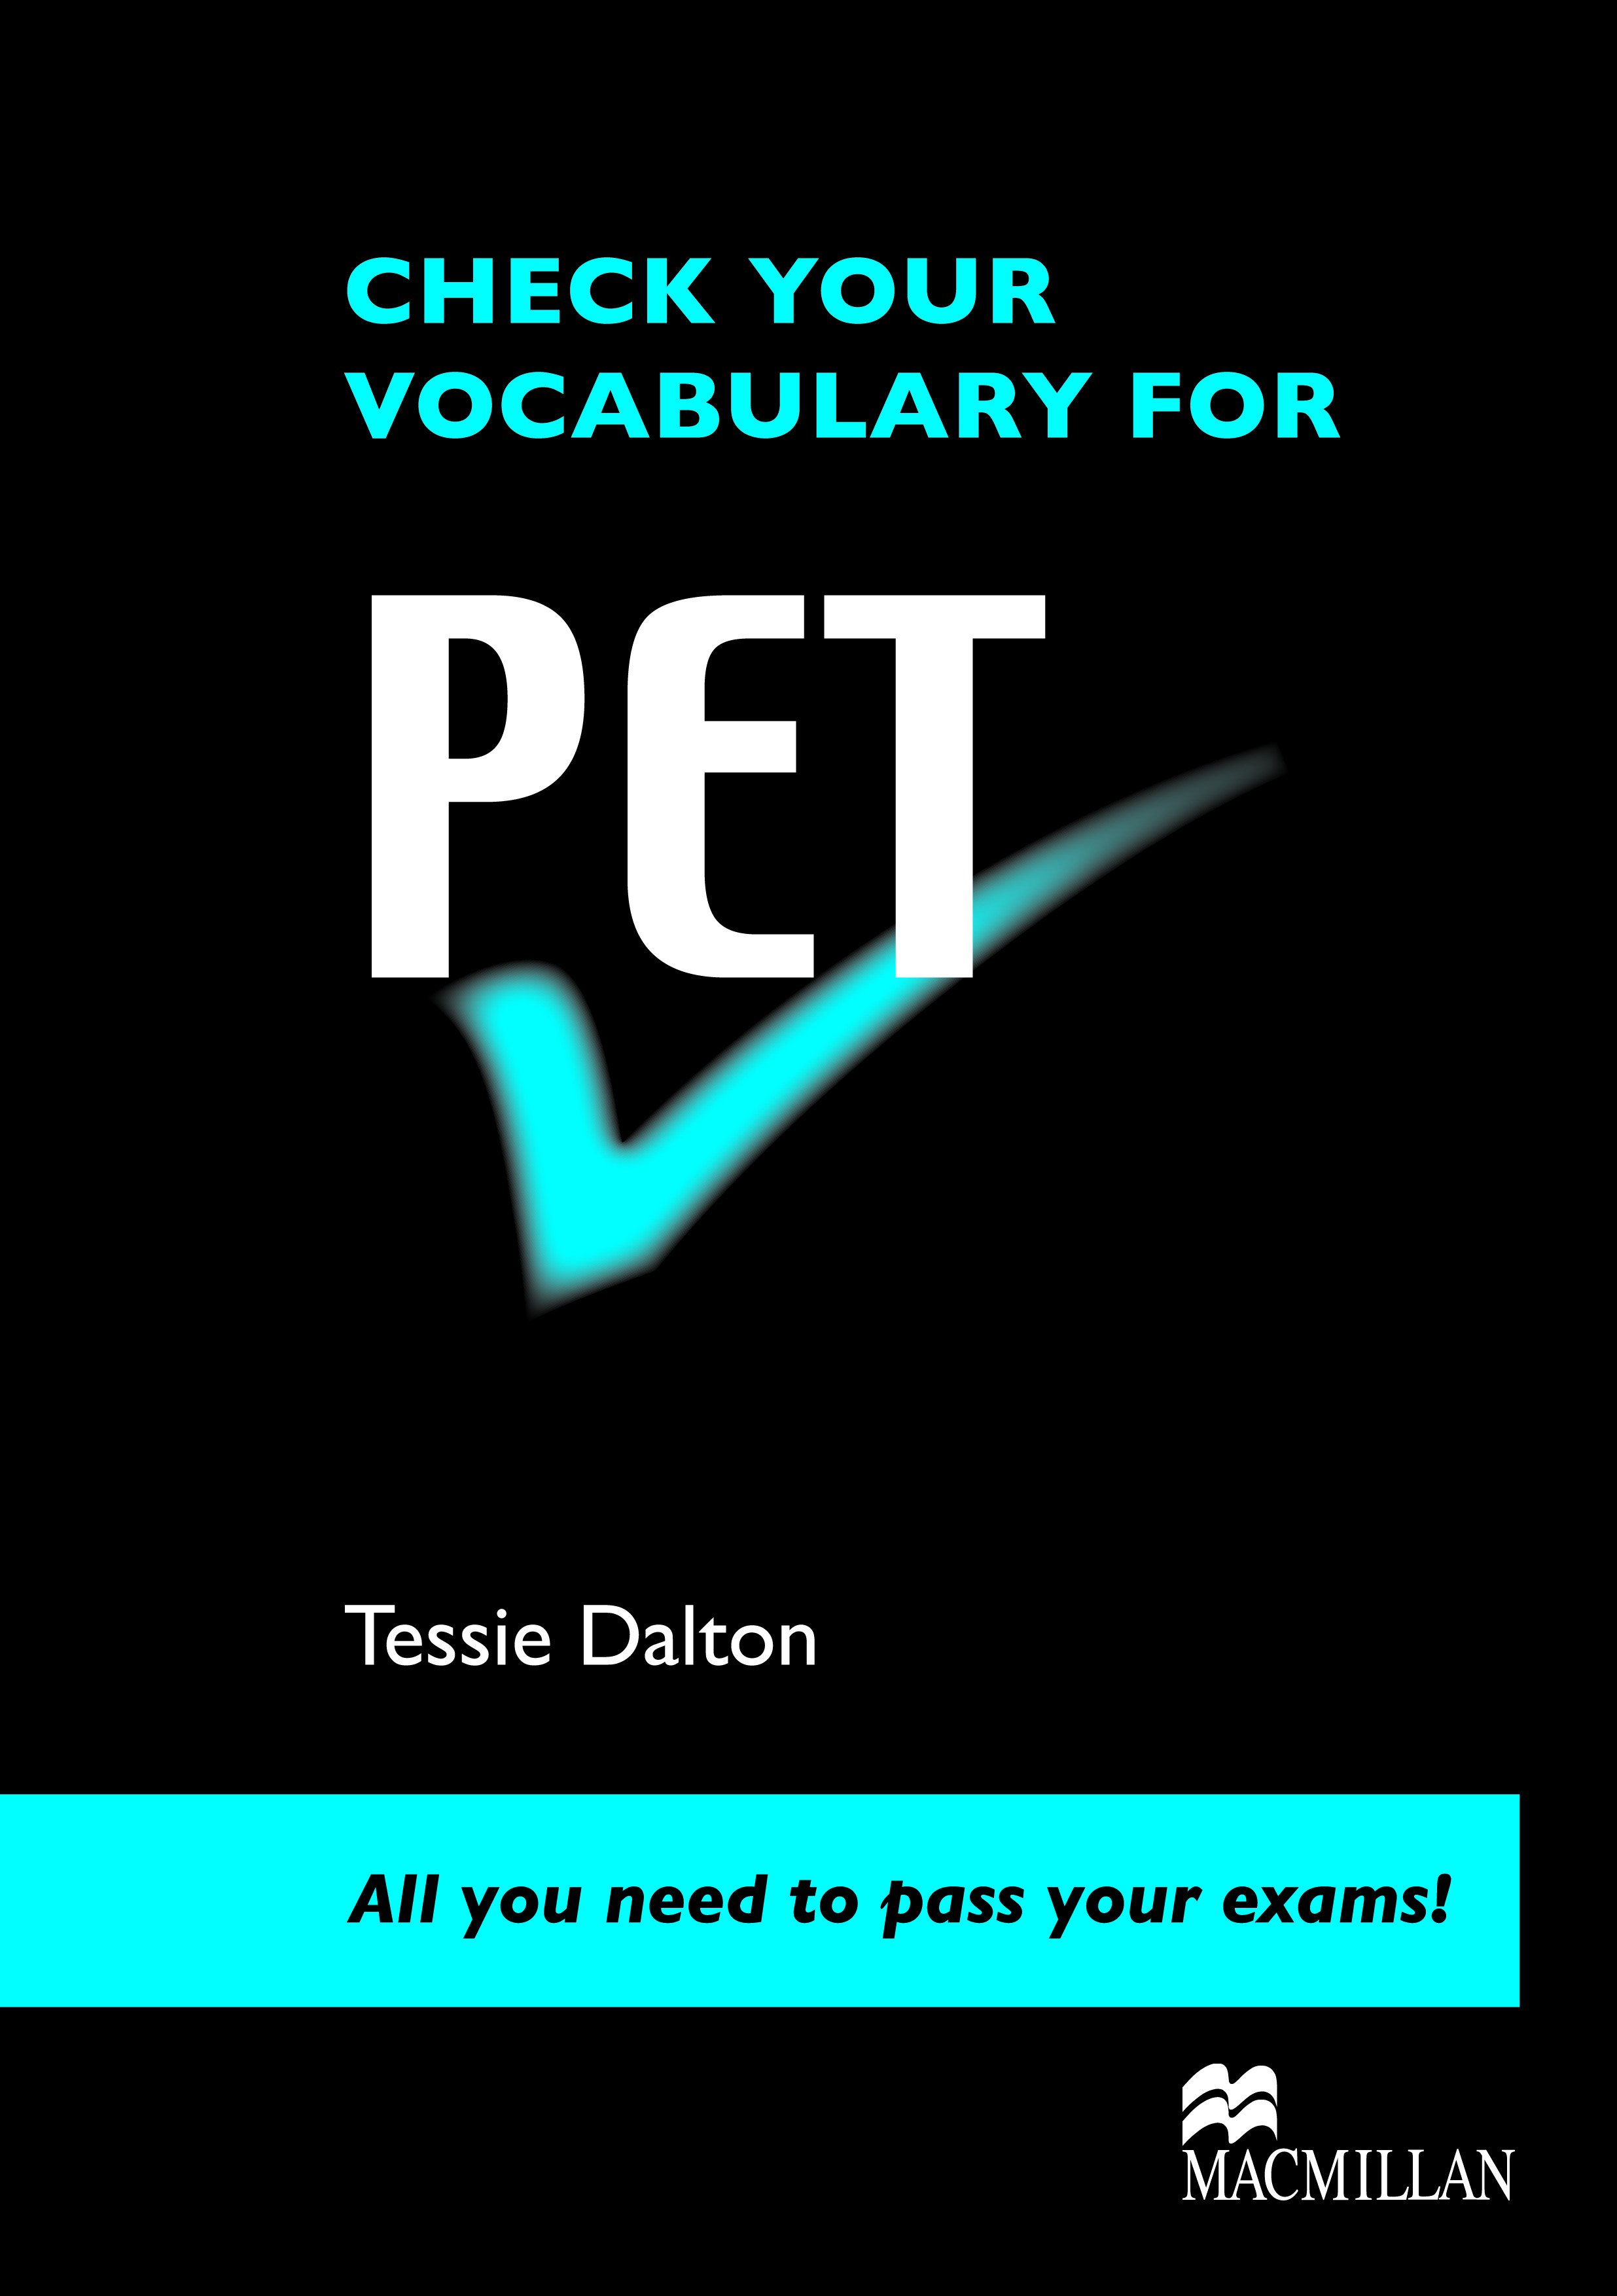 Check Your Vocabulary for PET